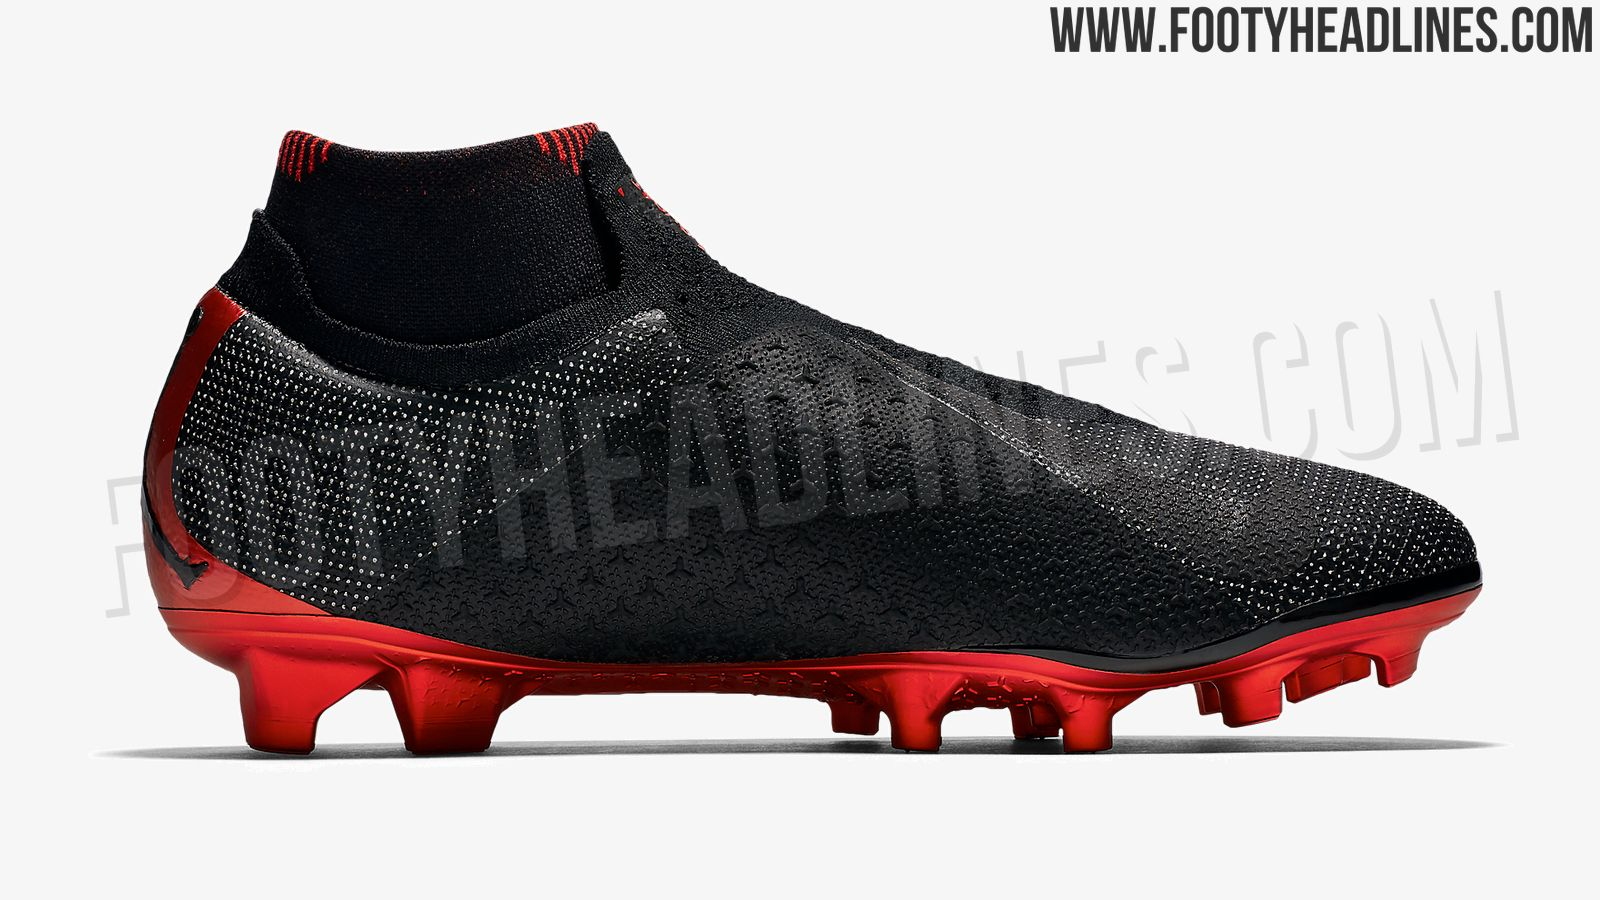 2f72339e2 The Nike Phantom Vision x Jordan x PSG football boots are predominantly  black with a white dot pattern and tonal Swooshes along the sides.